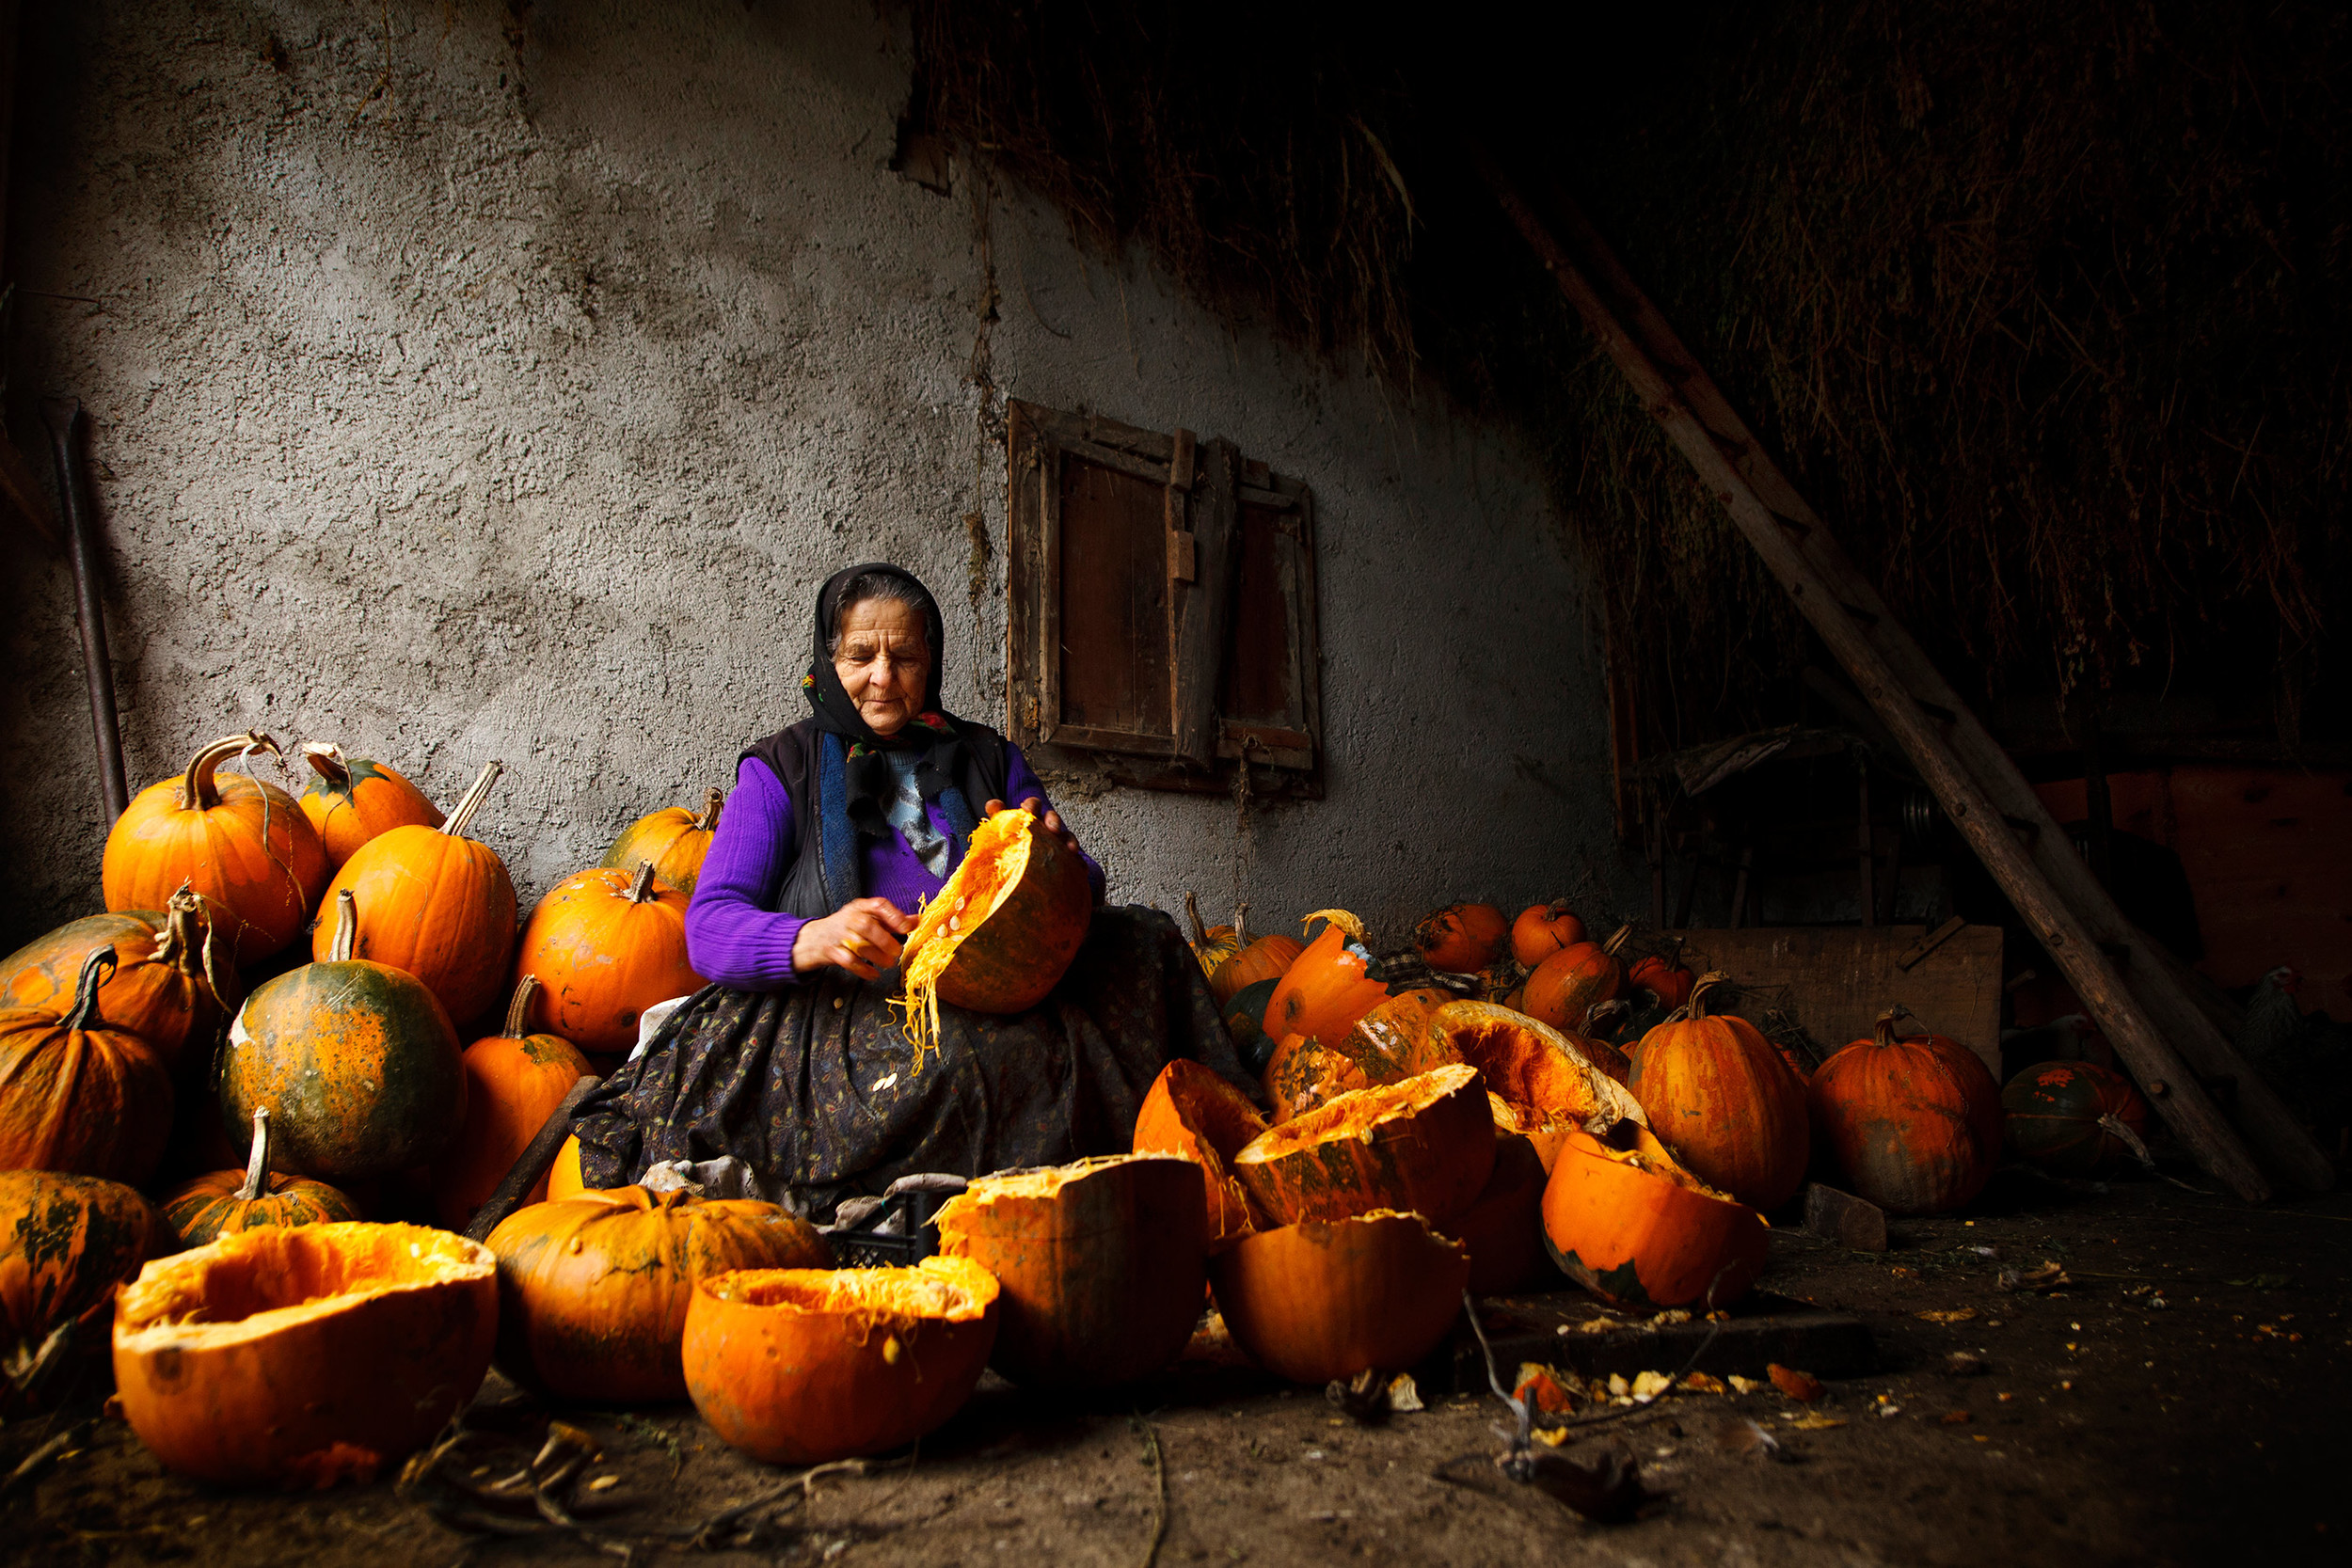 Romanian woman with pumpkins